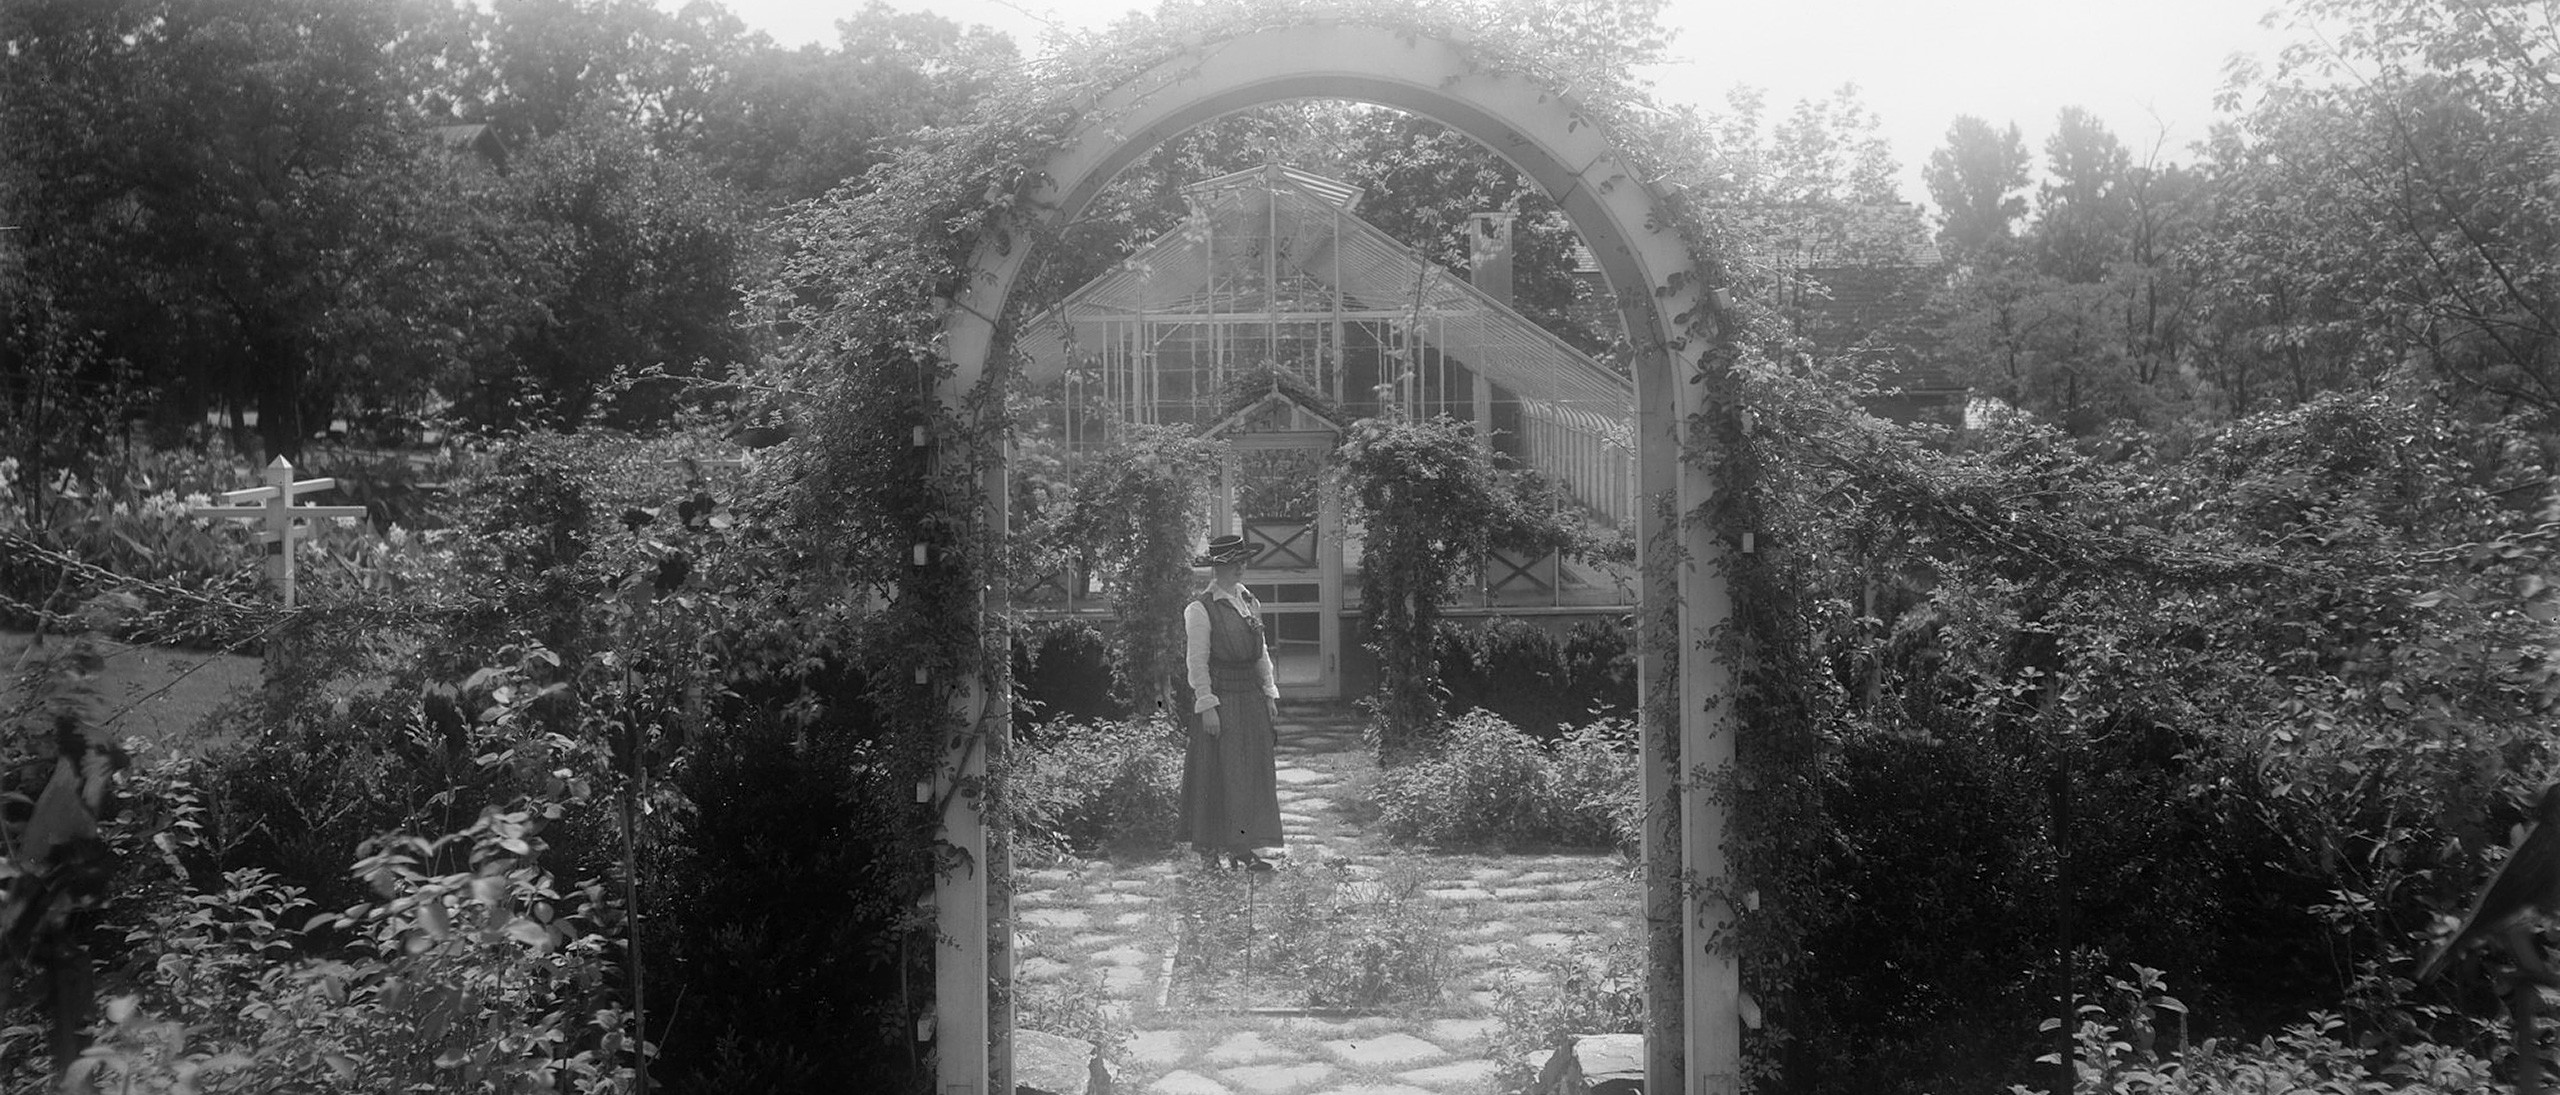 Woman in broad-brimmed hat standing behind a vine-covered archway